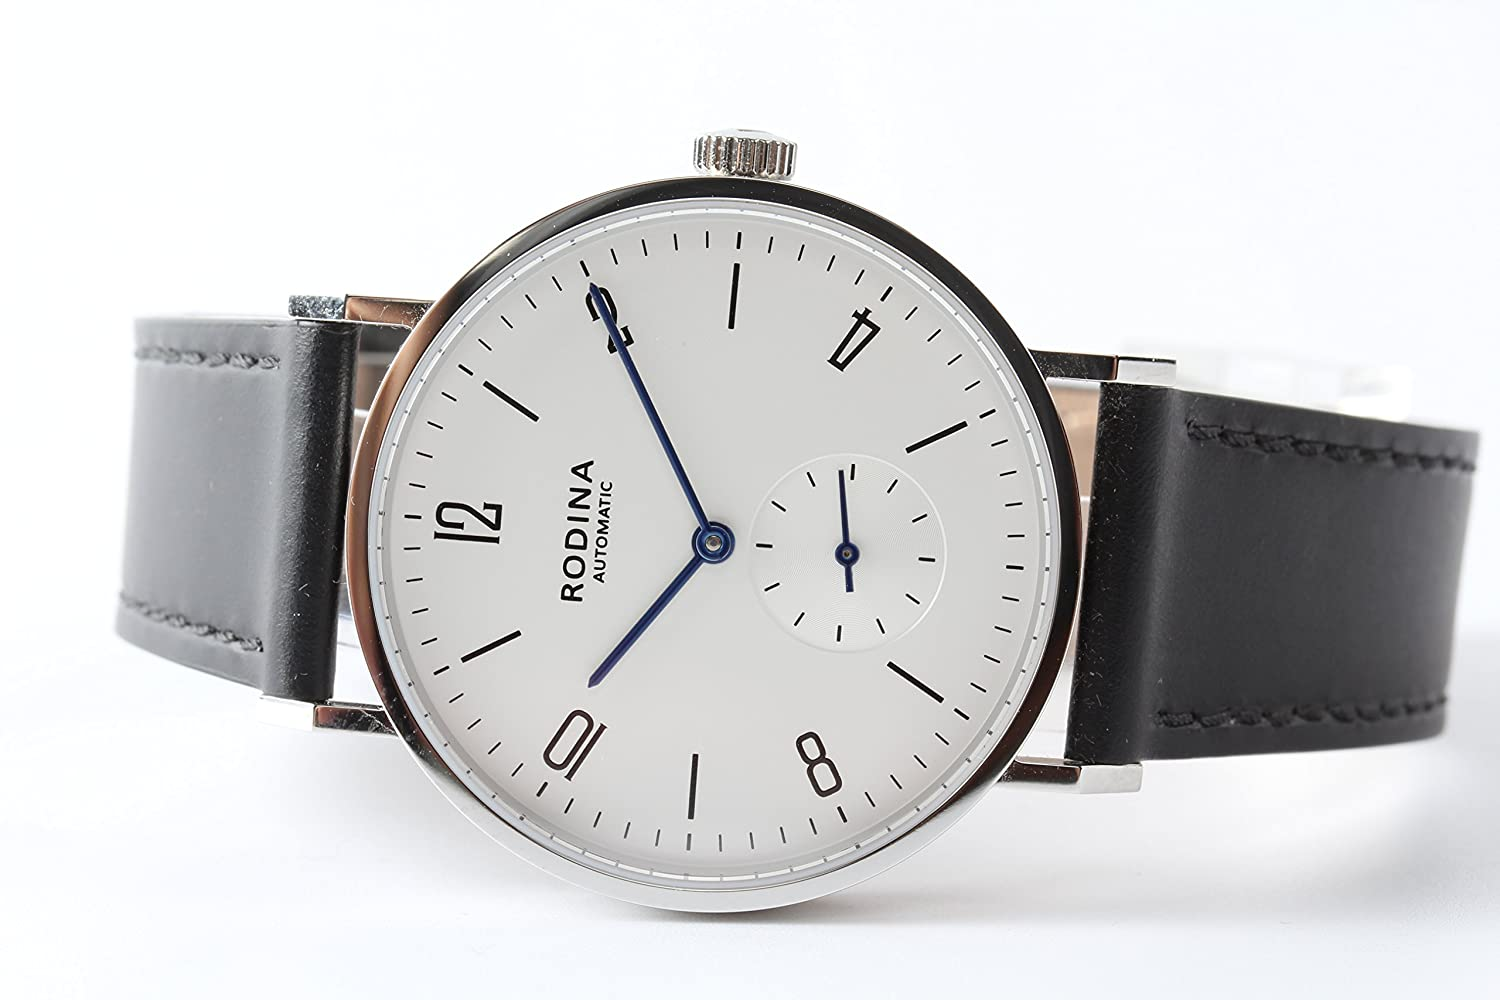 group oem on alibaba wrist classic aliexpress com automatic in men s by european watches from mechanical style rodina seagull item